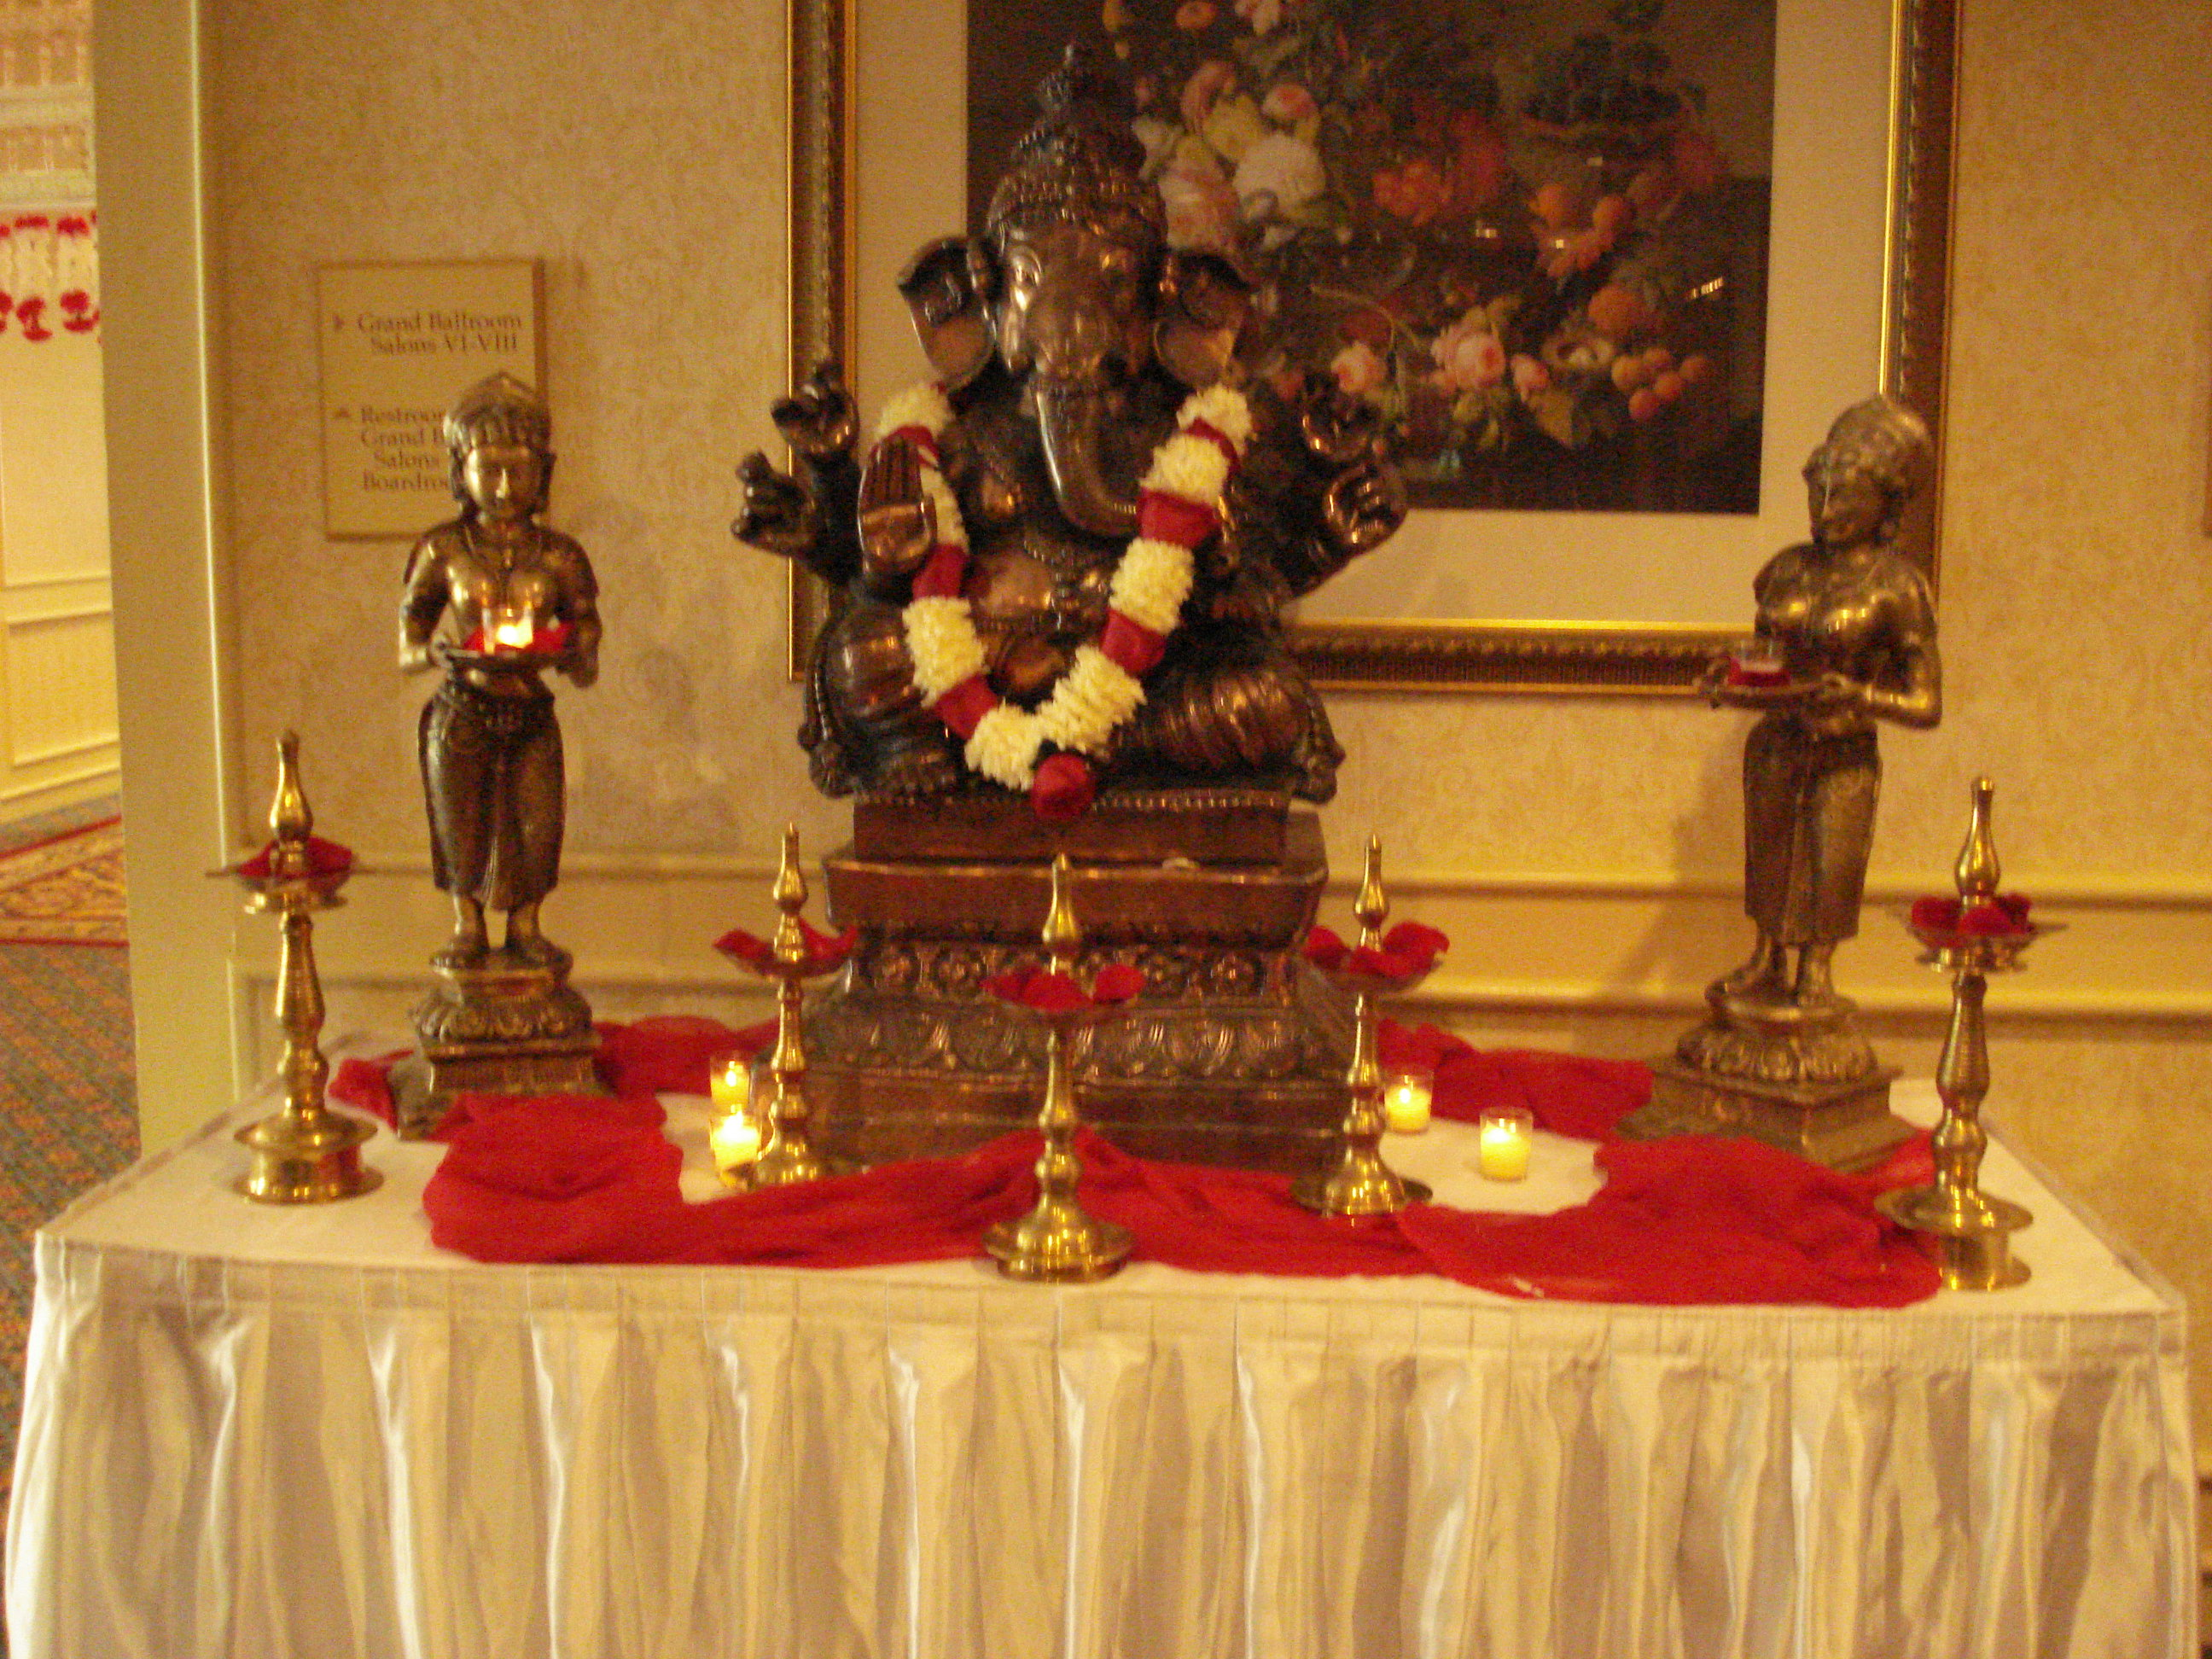 The Ganesha welcoming guests